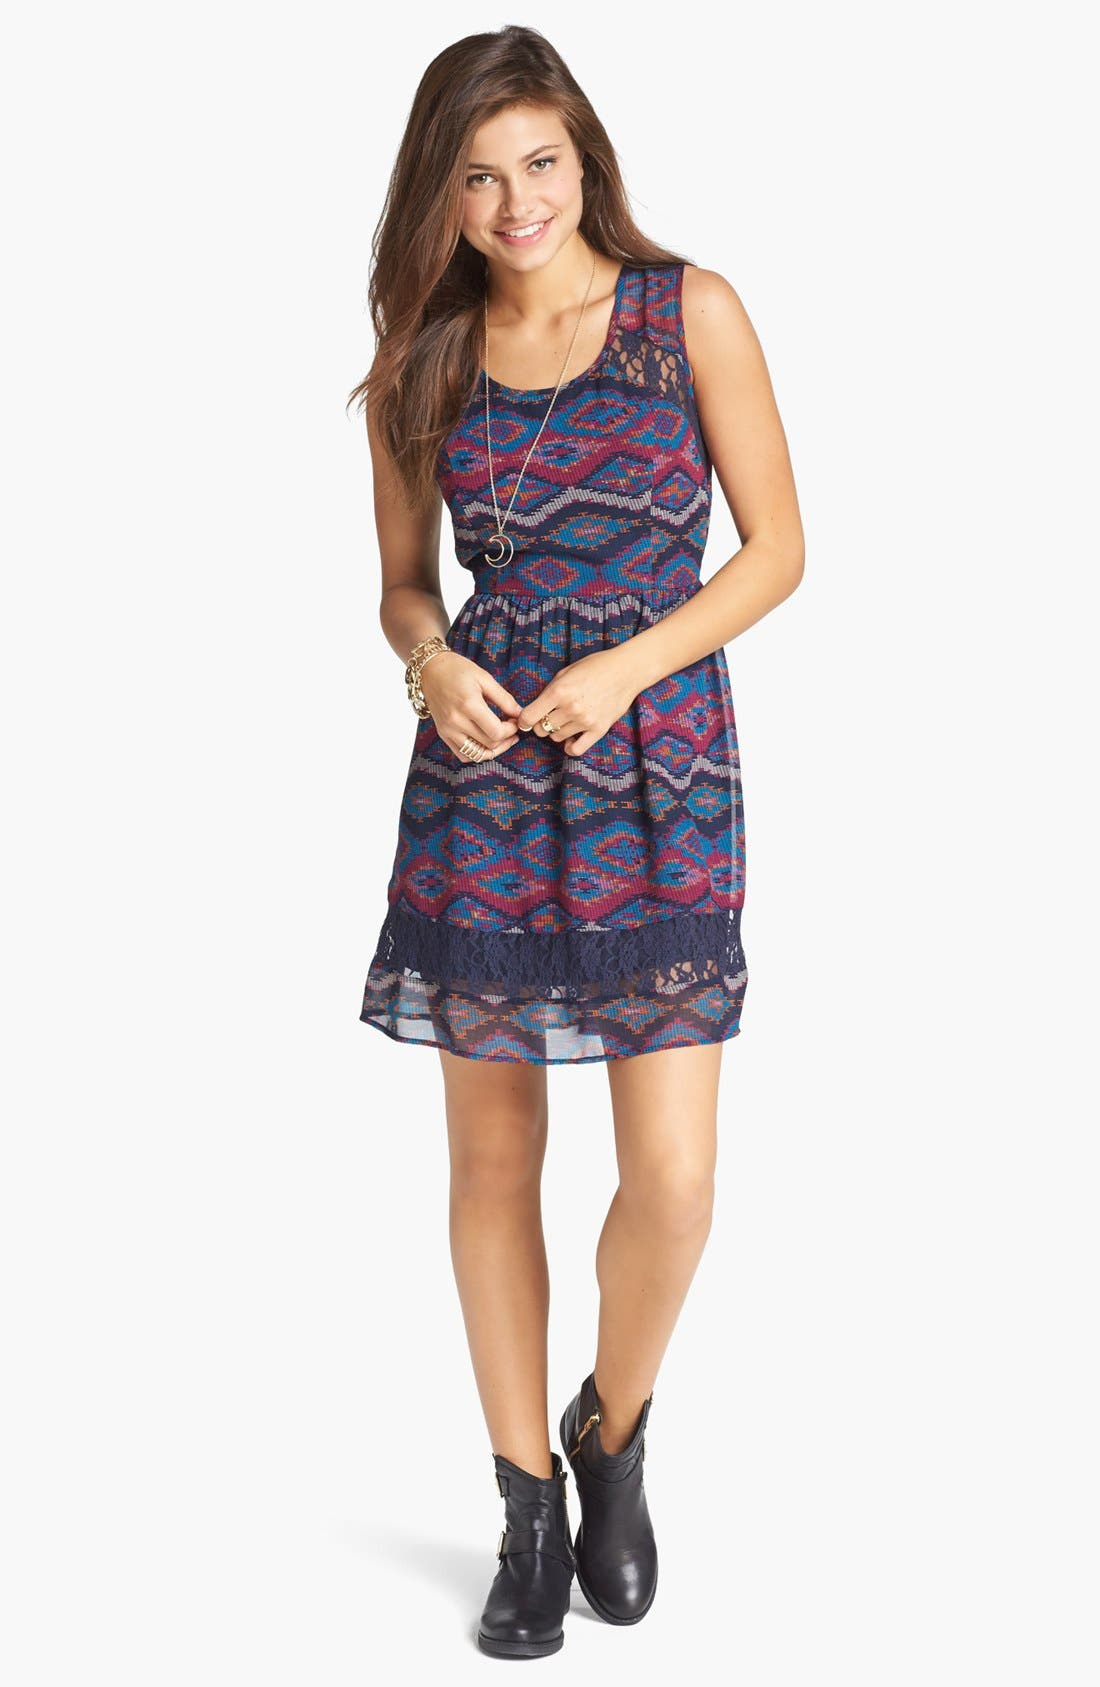 Alternate Image 1 Selected - Band of Gypsies Lace Inset Print Fit & Flare Dress (Juniors)